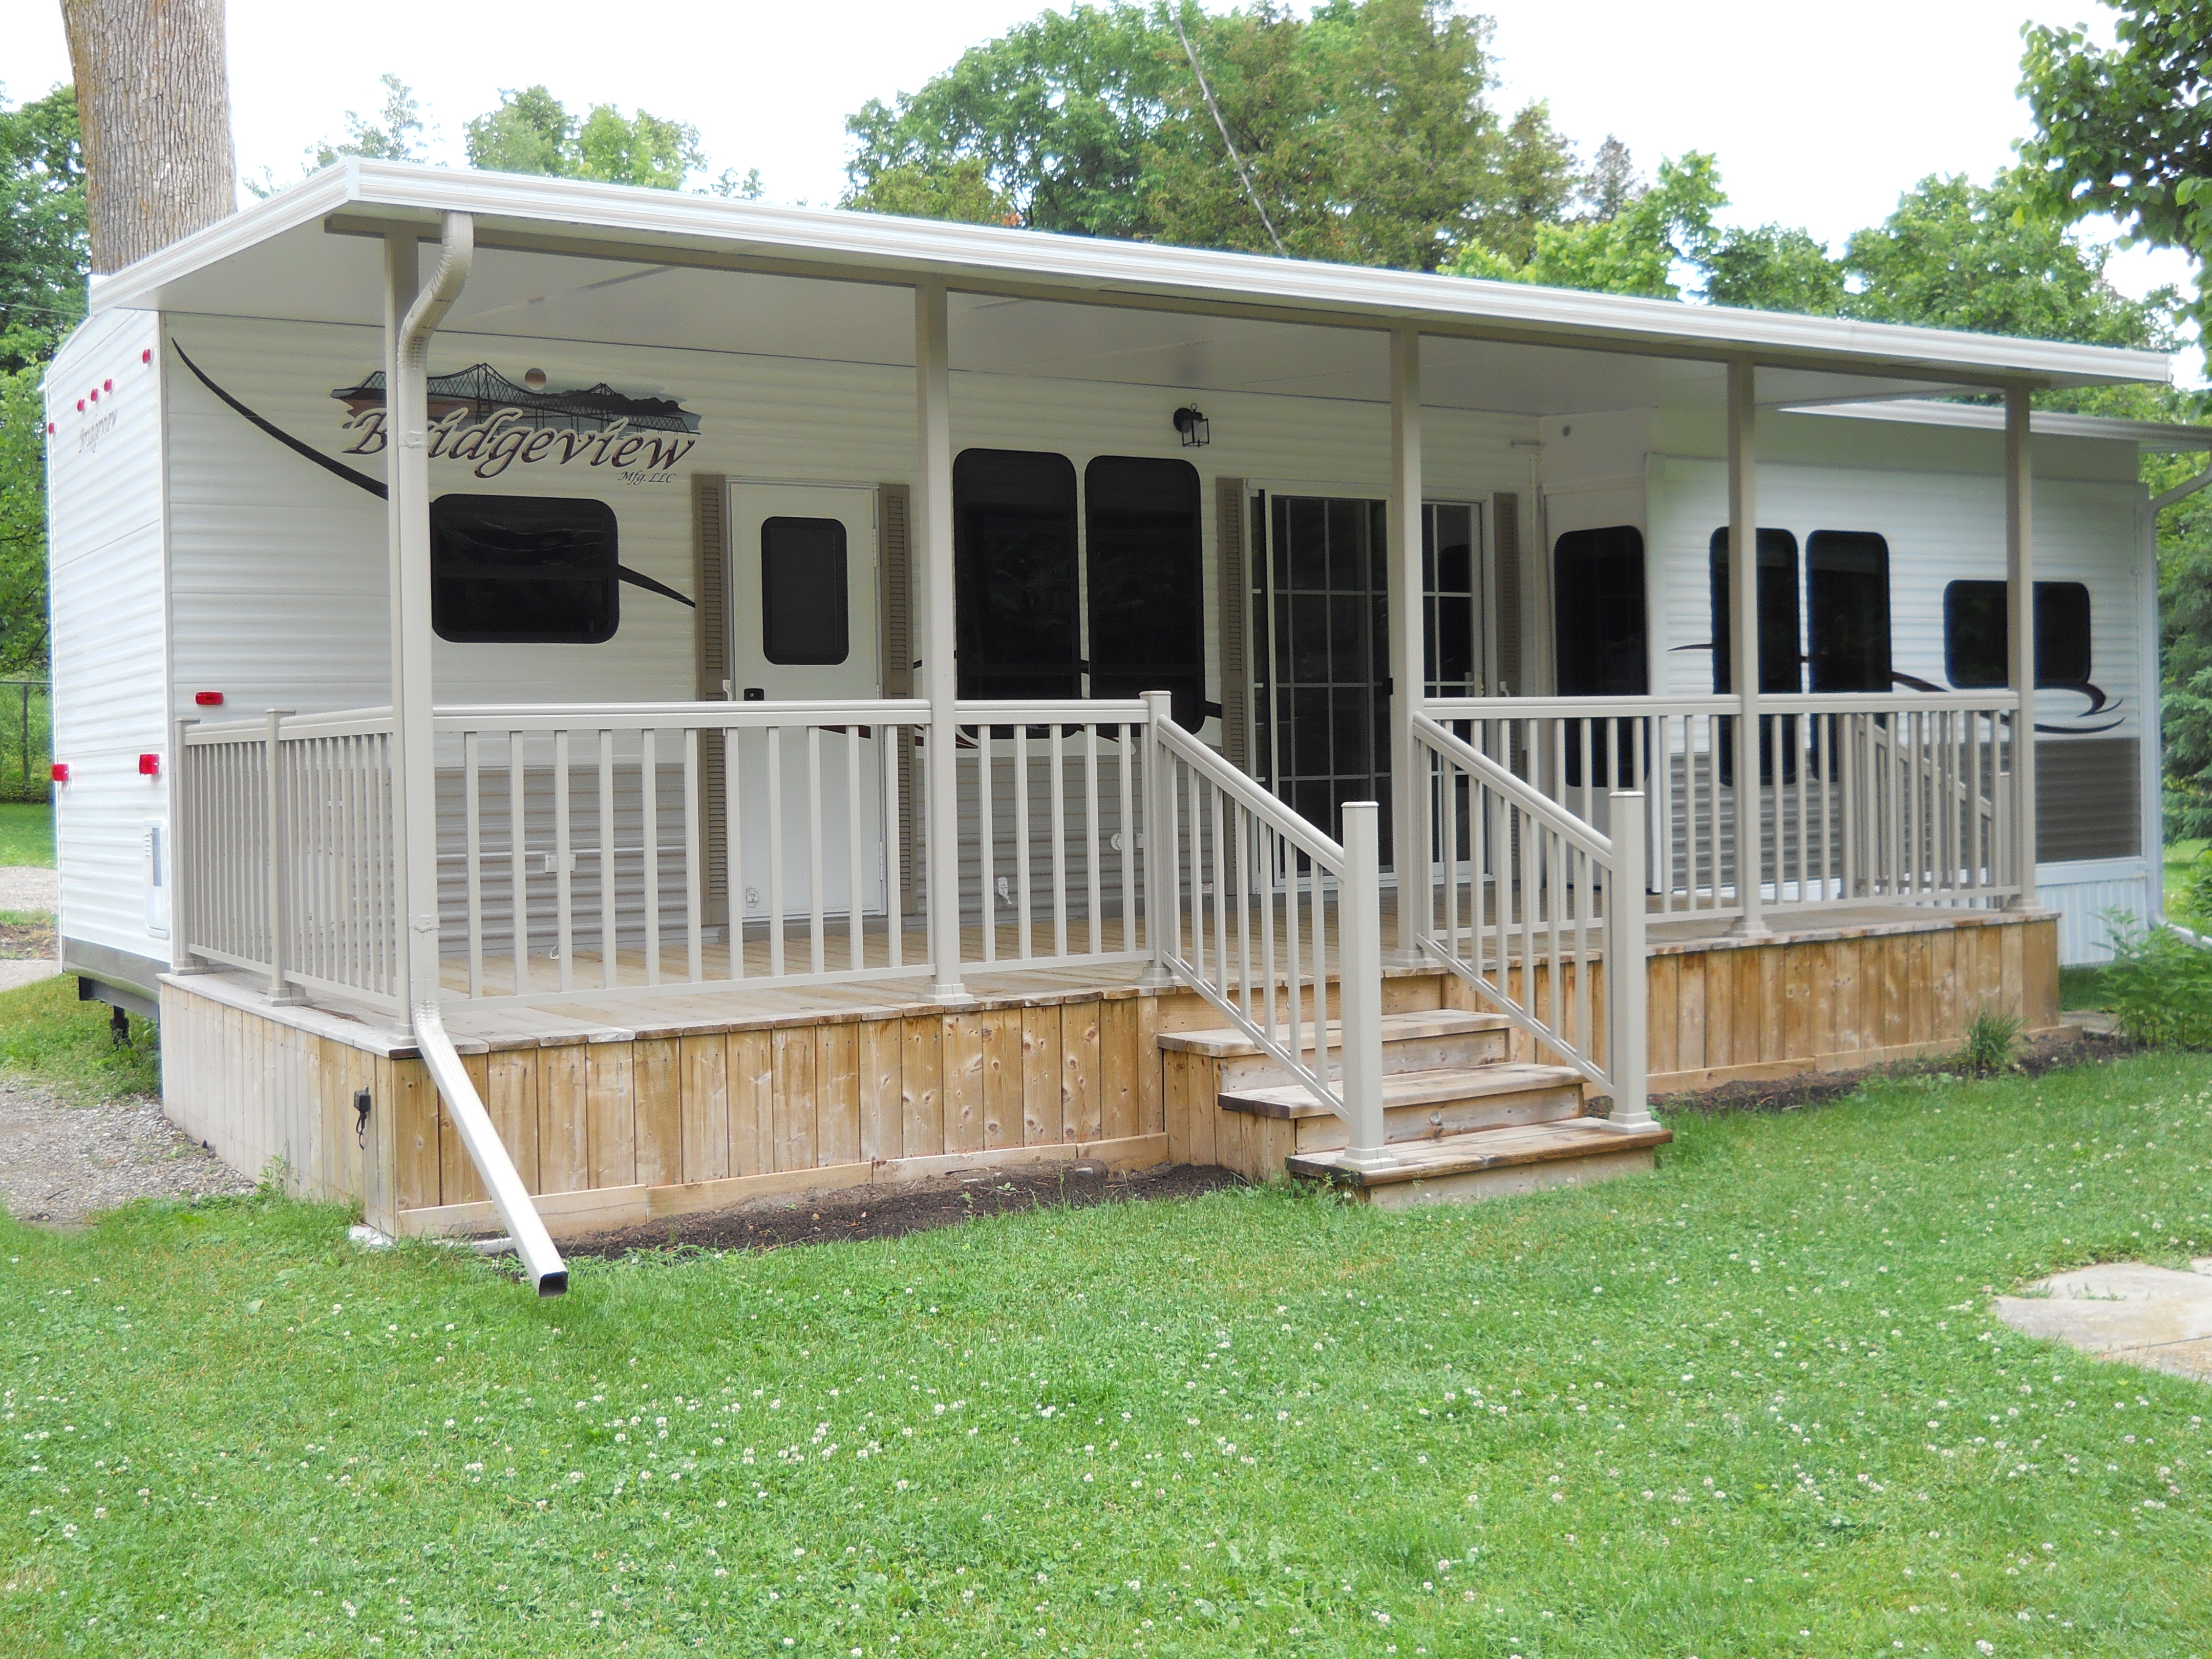 Rv products and services whistle bare campground for Rv decks